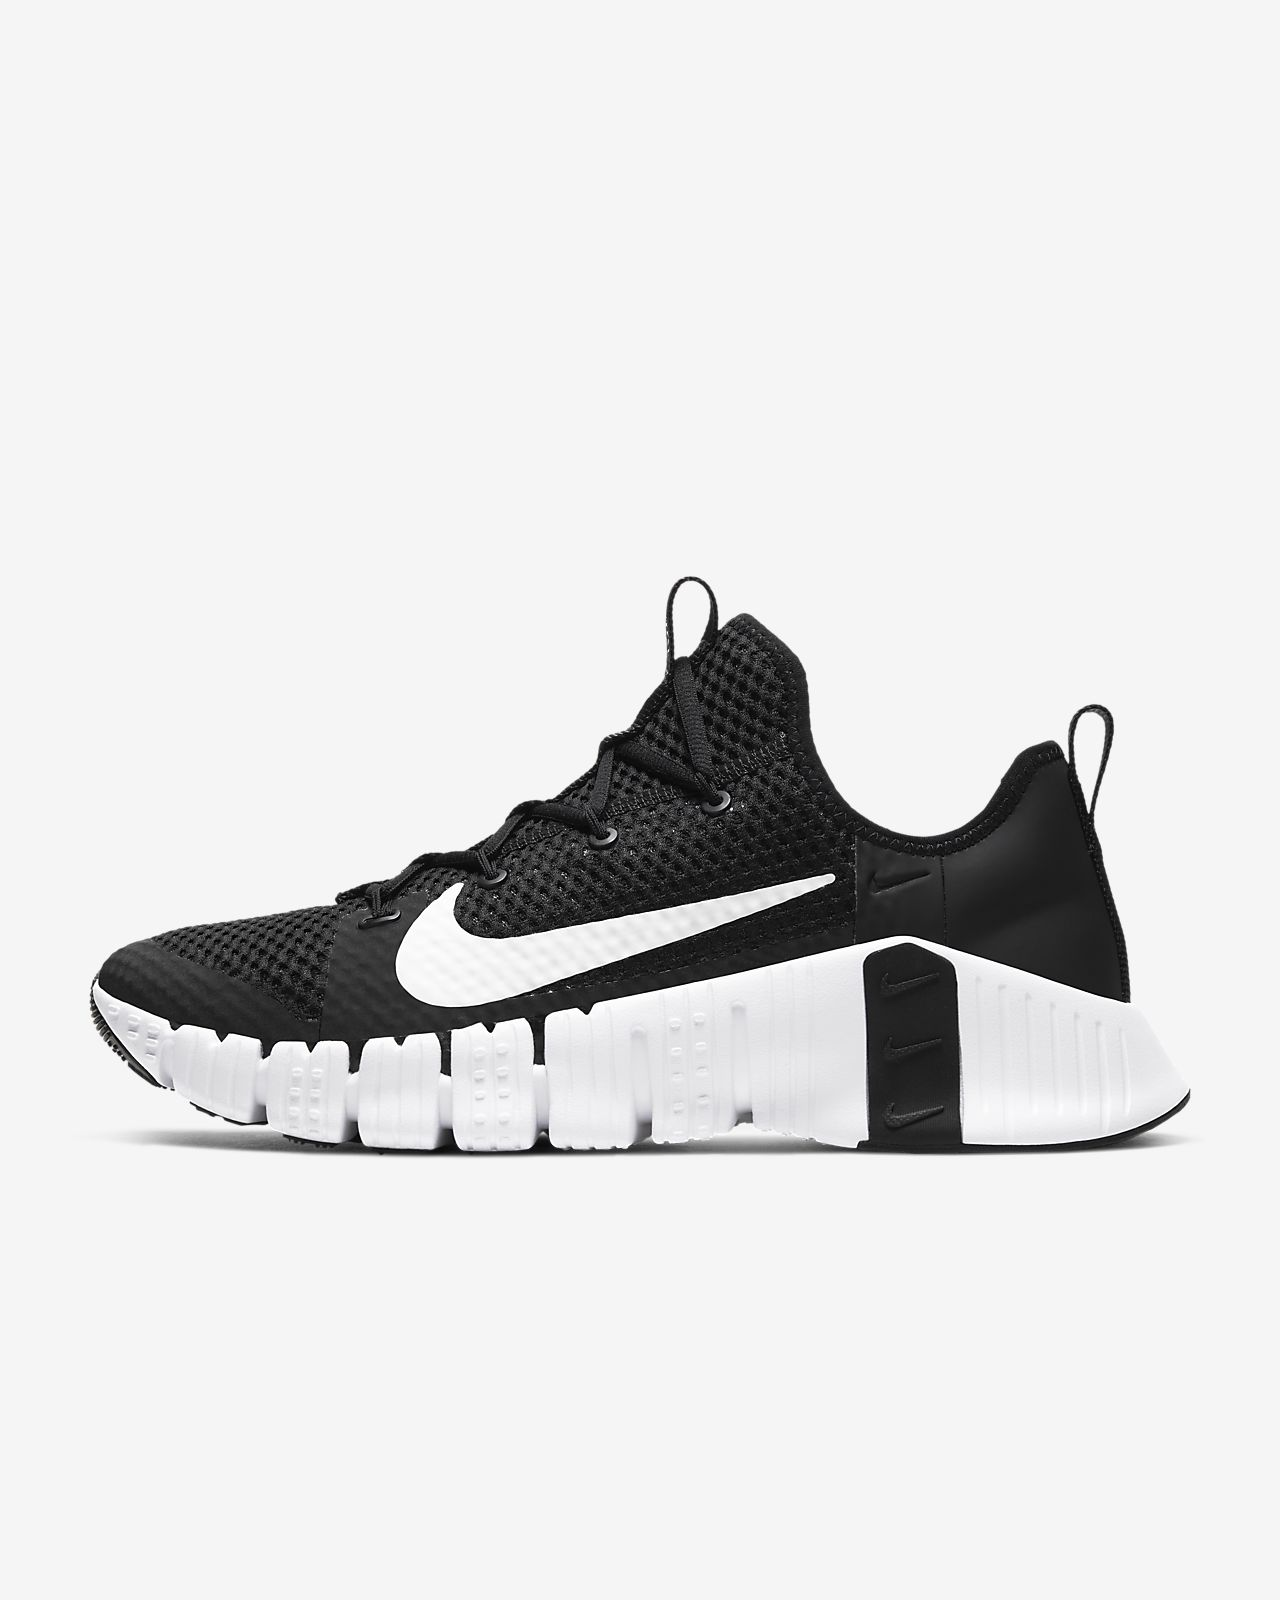 Nike Air Max 97 UL ´17 Chaussures Nike Running 2019 Pas Cher Pour Femme Roes Blanc 2001290409 Boutique Pas Cher 2019 Officiel Nike!